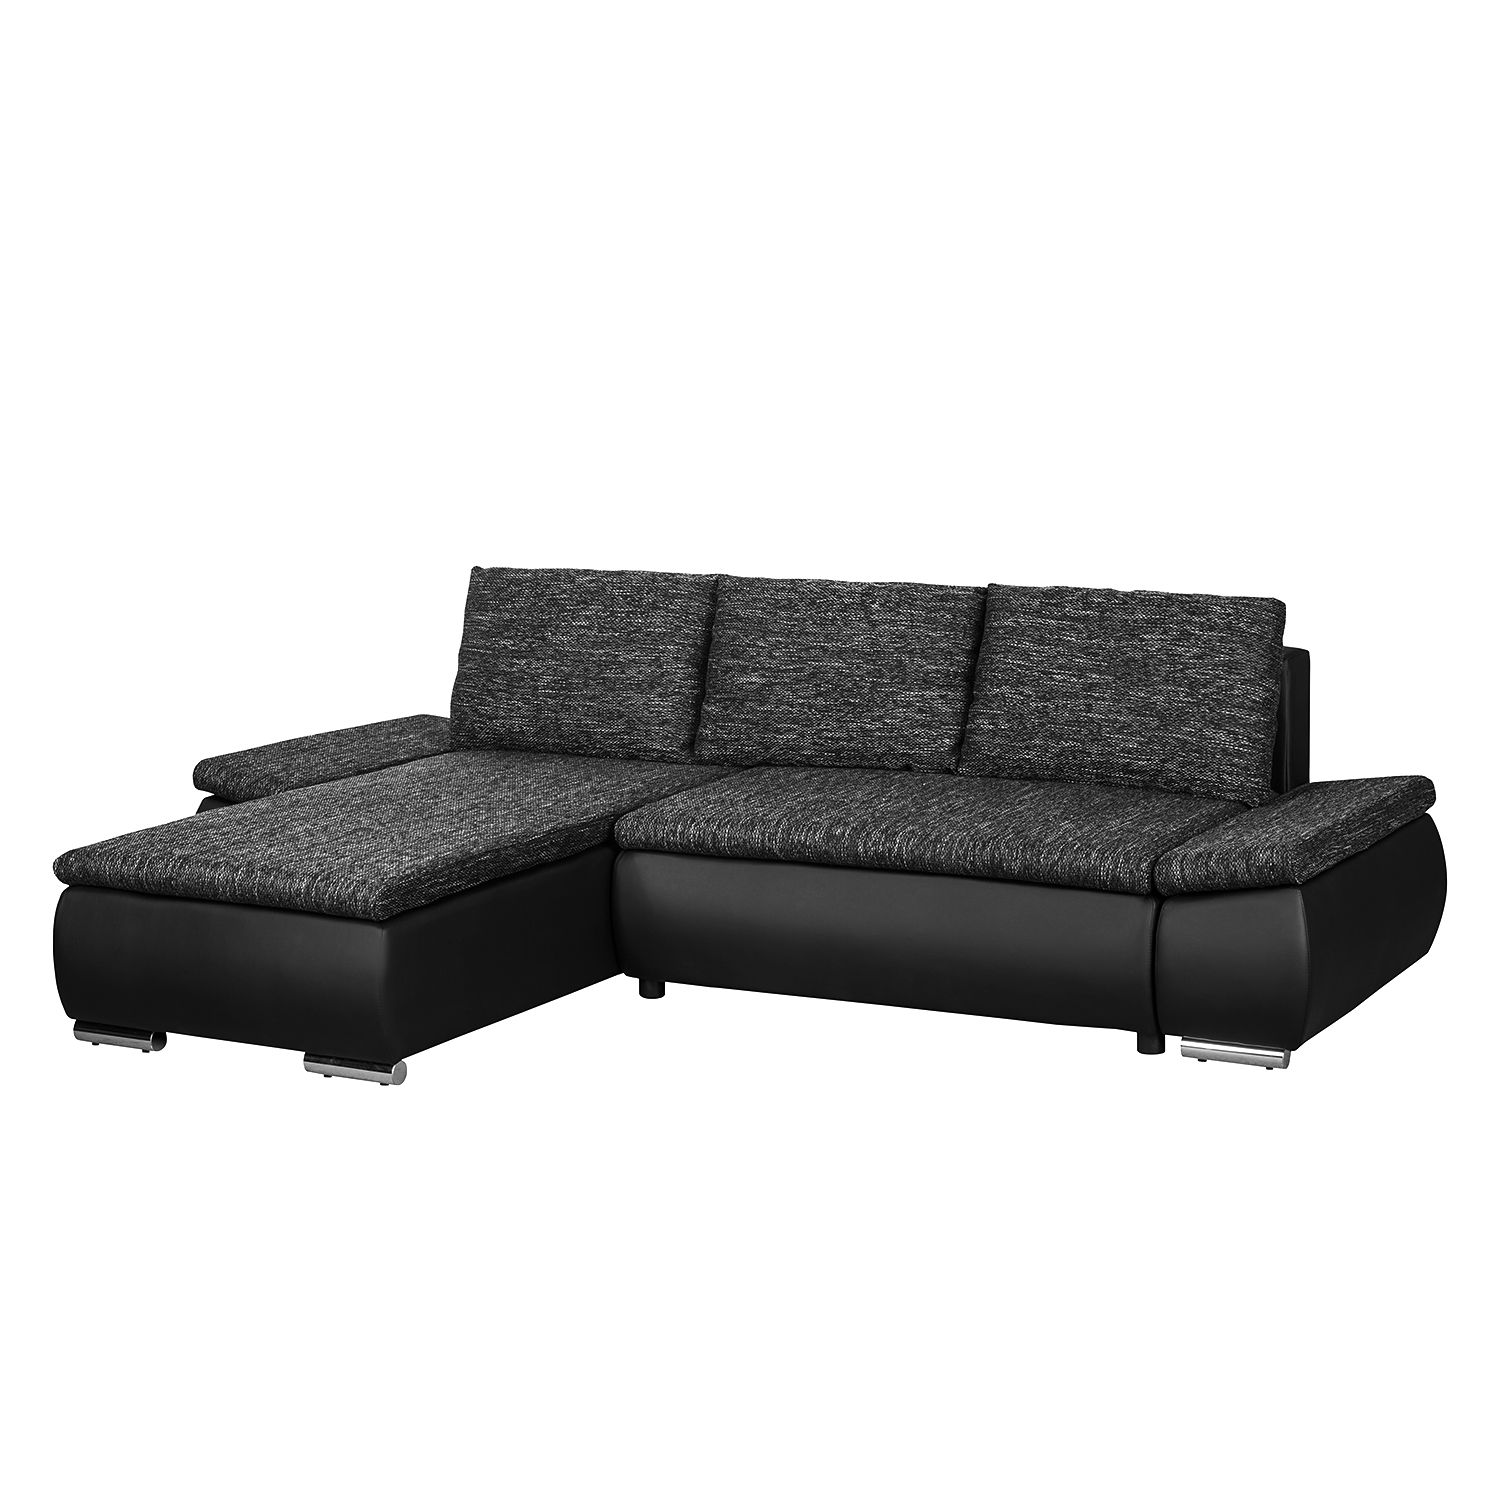 wohnzimmer sofa schwarz. Black Bedroom Furniture Sets. Home Design Ideas